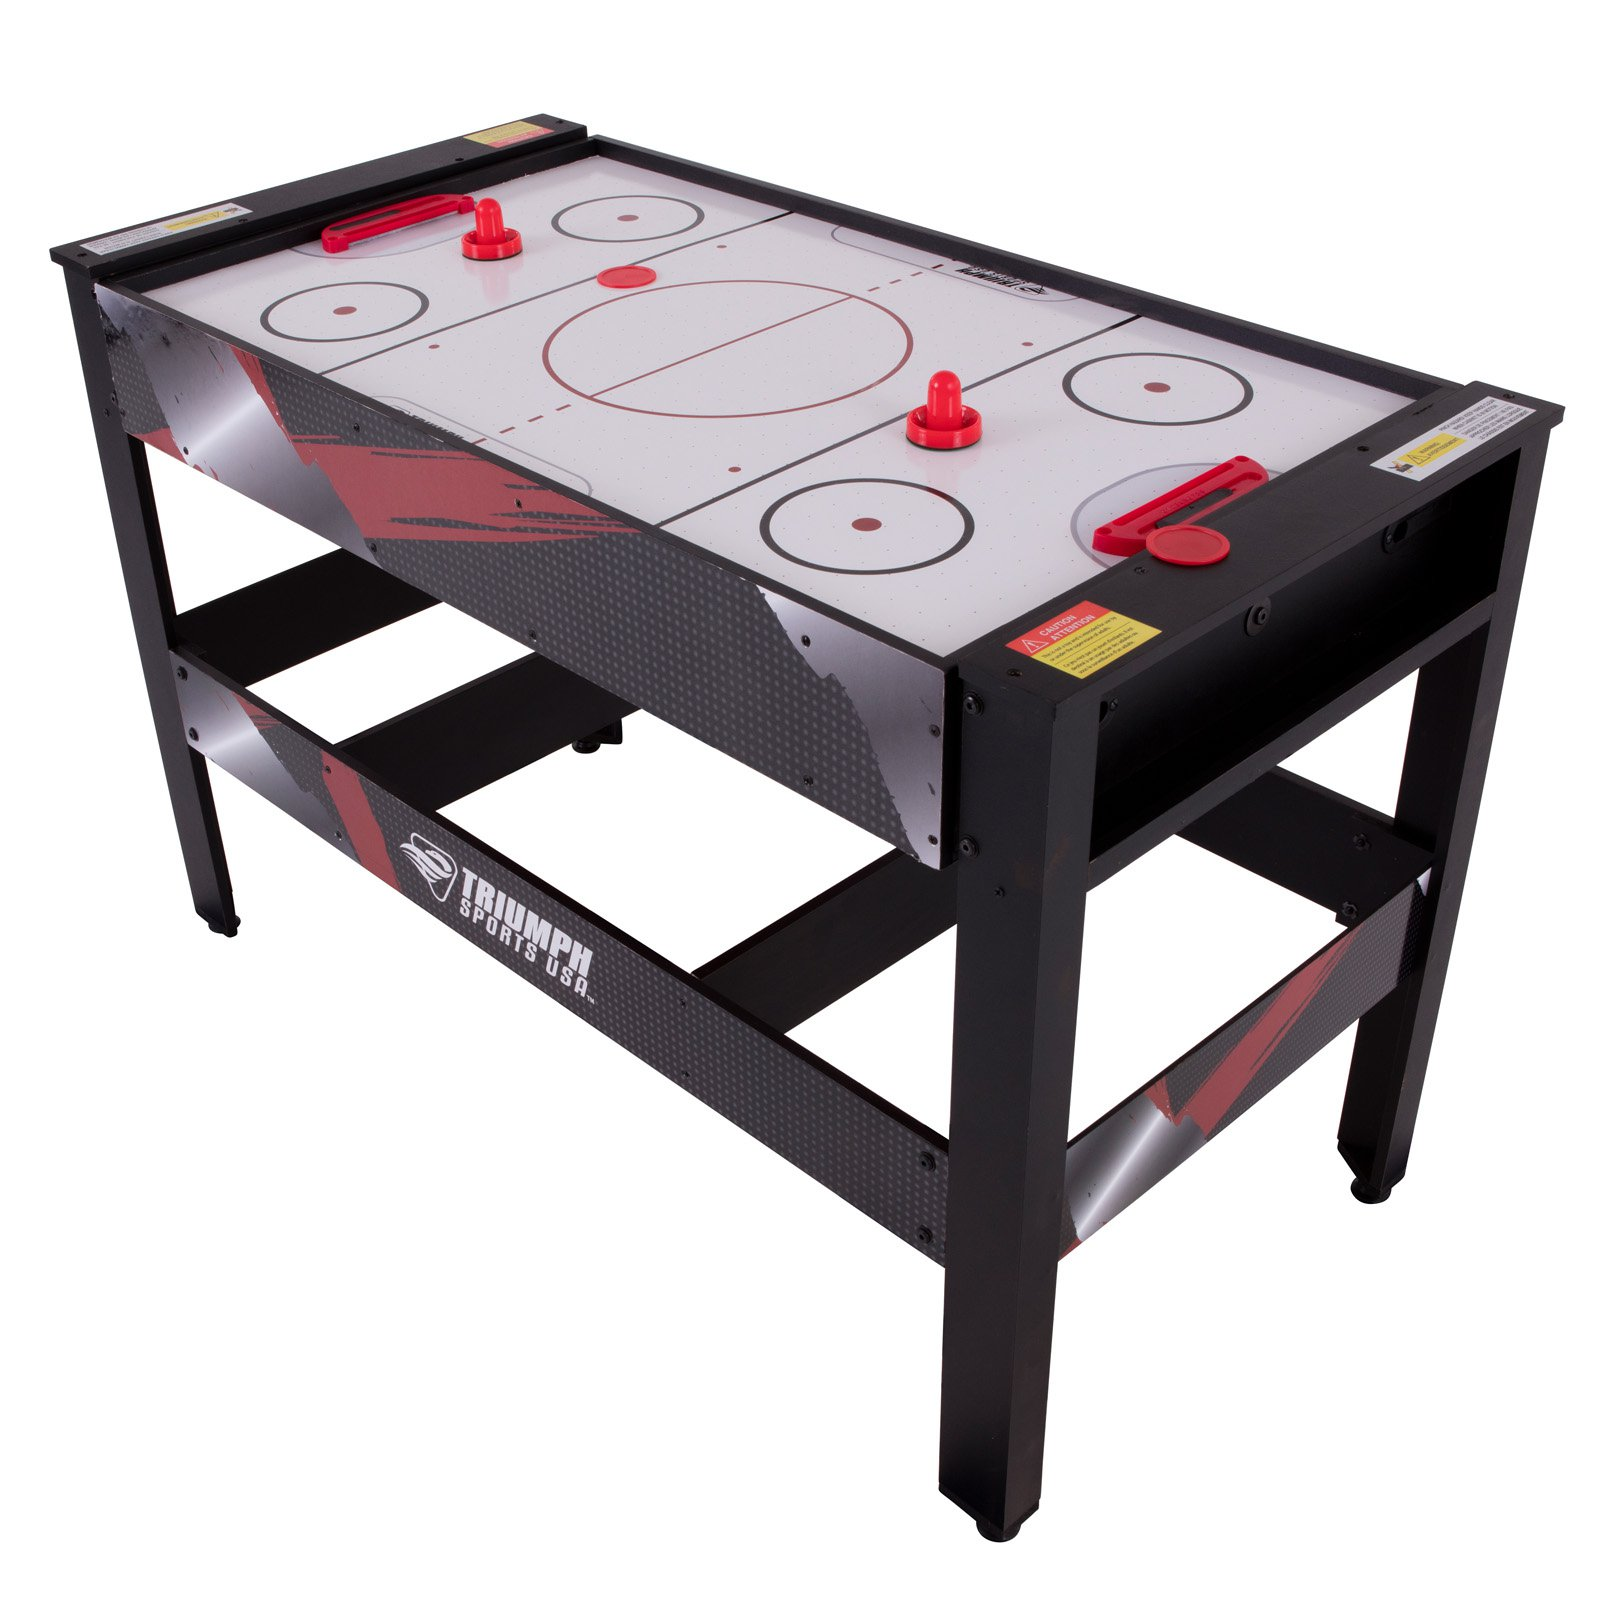 Triumph 48 in. 4-in-1 Swivel Multigame Table (Air Hockey, Billiards, Table Tennis, Launch Football)